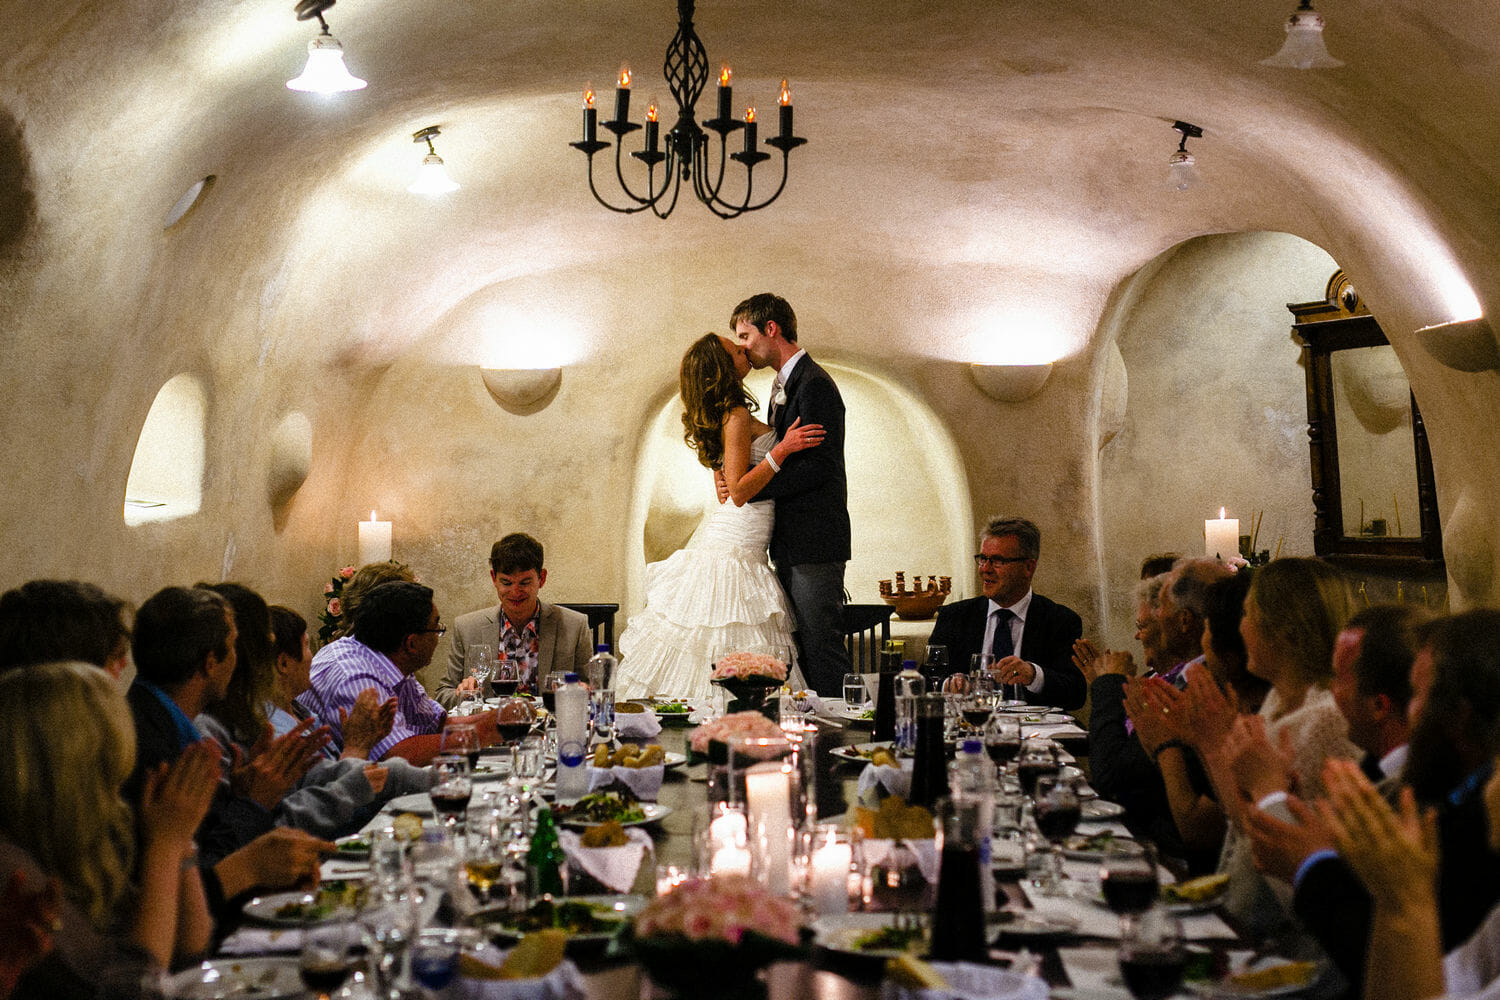 wedding-santorini-greece-anna-andreas-189